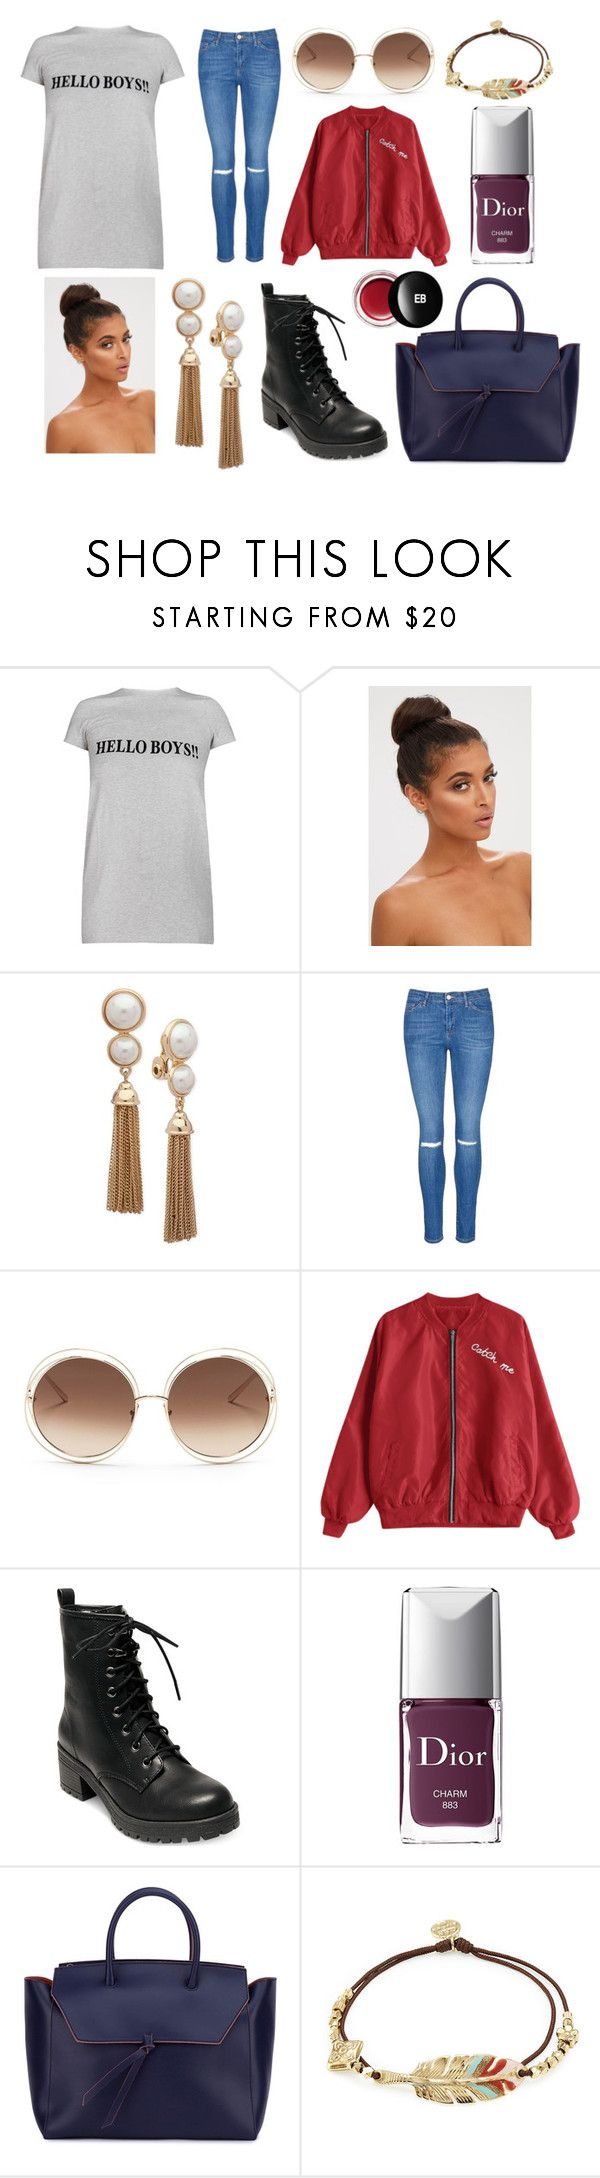 """Outdoor cinema in Michigan"" by hailey-smith-13 ❤ liked on Polyvore featuring Vetements, Anne Klein, Topshop, Chloé, Madden Girl, Christian Dior, Alexandra de Curtis, Gas Bijoux and Edward Bess"